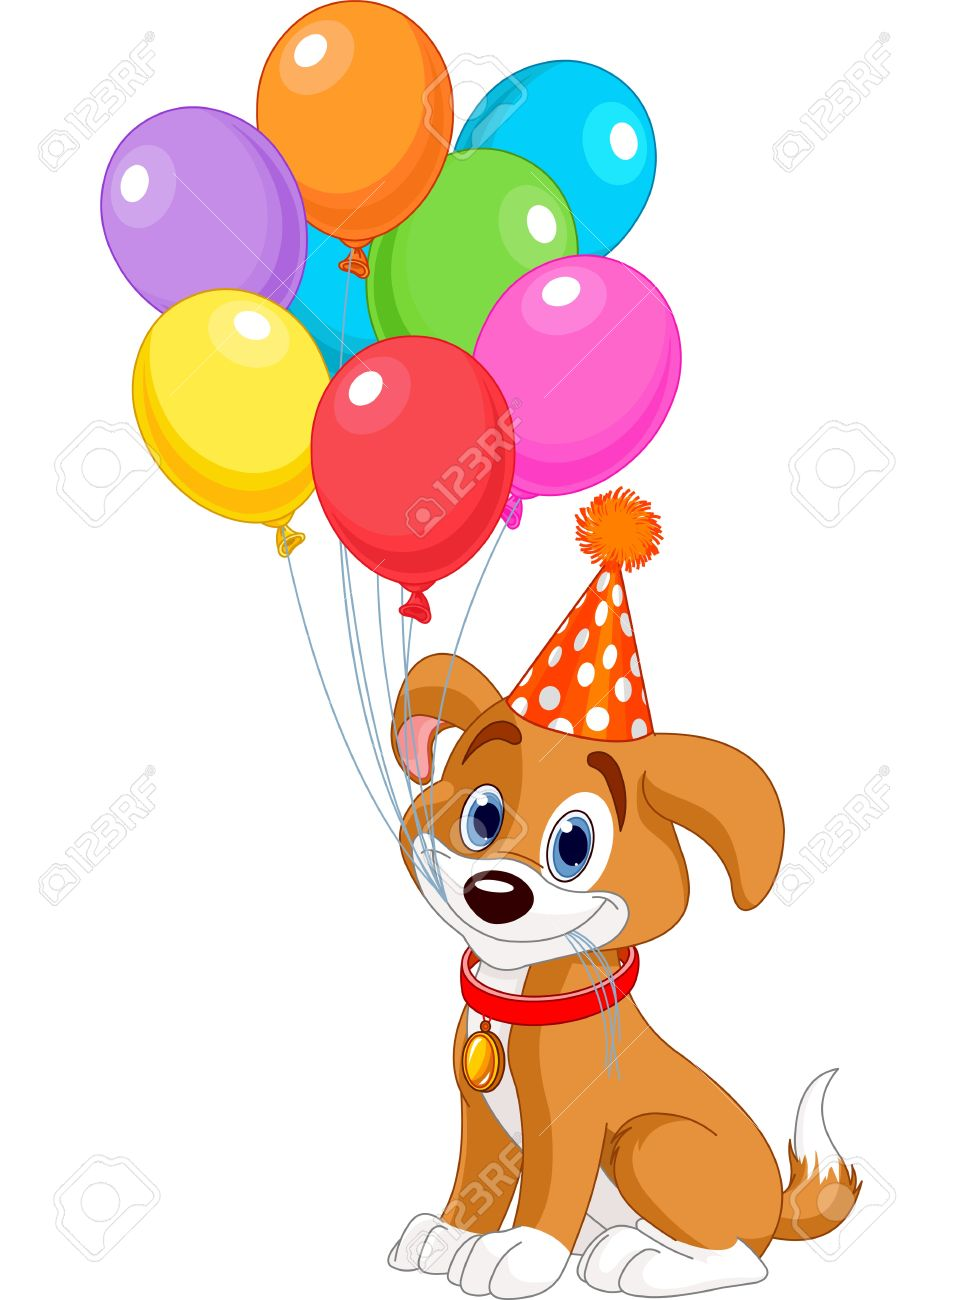 Cute Puppy With Birthday Balloons And Party Hat Stock Vector